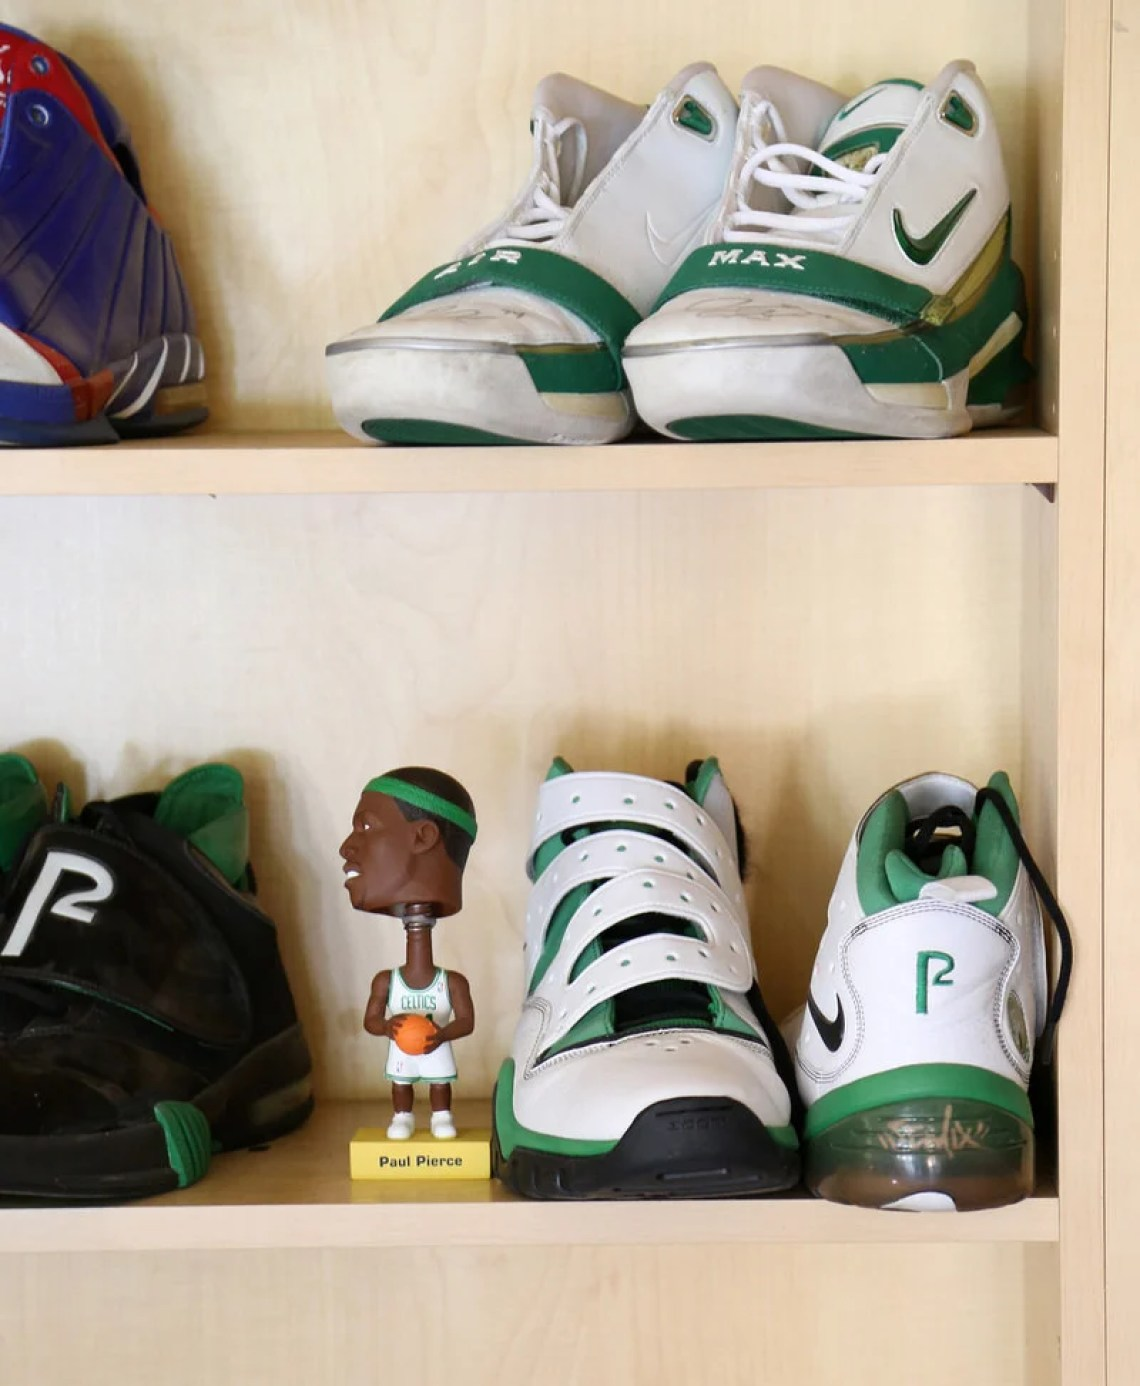 inside paul pierces collection of gameworn nike sneakers